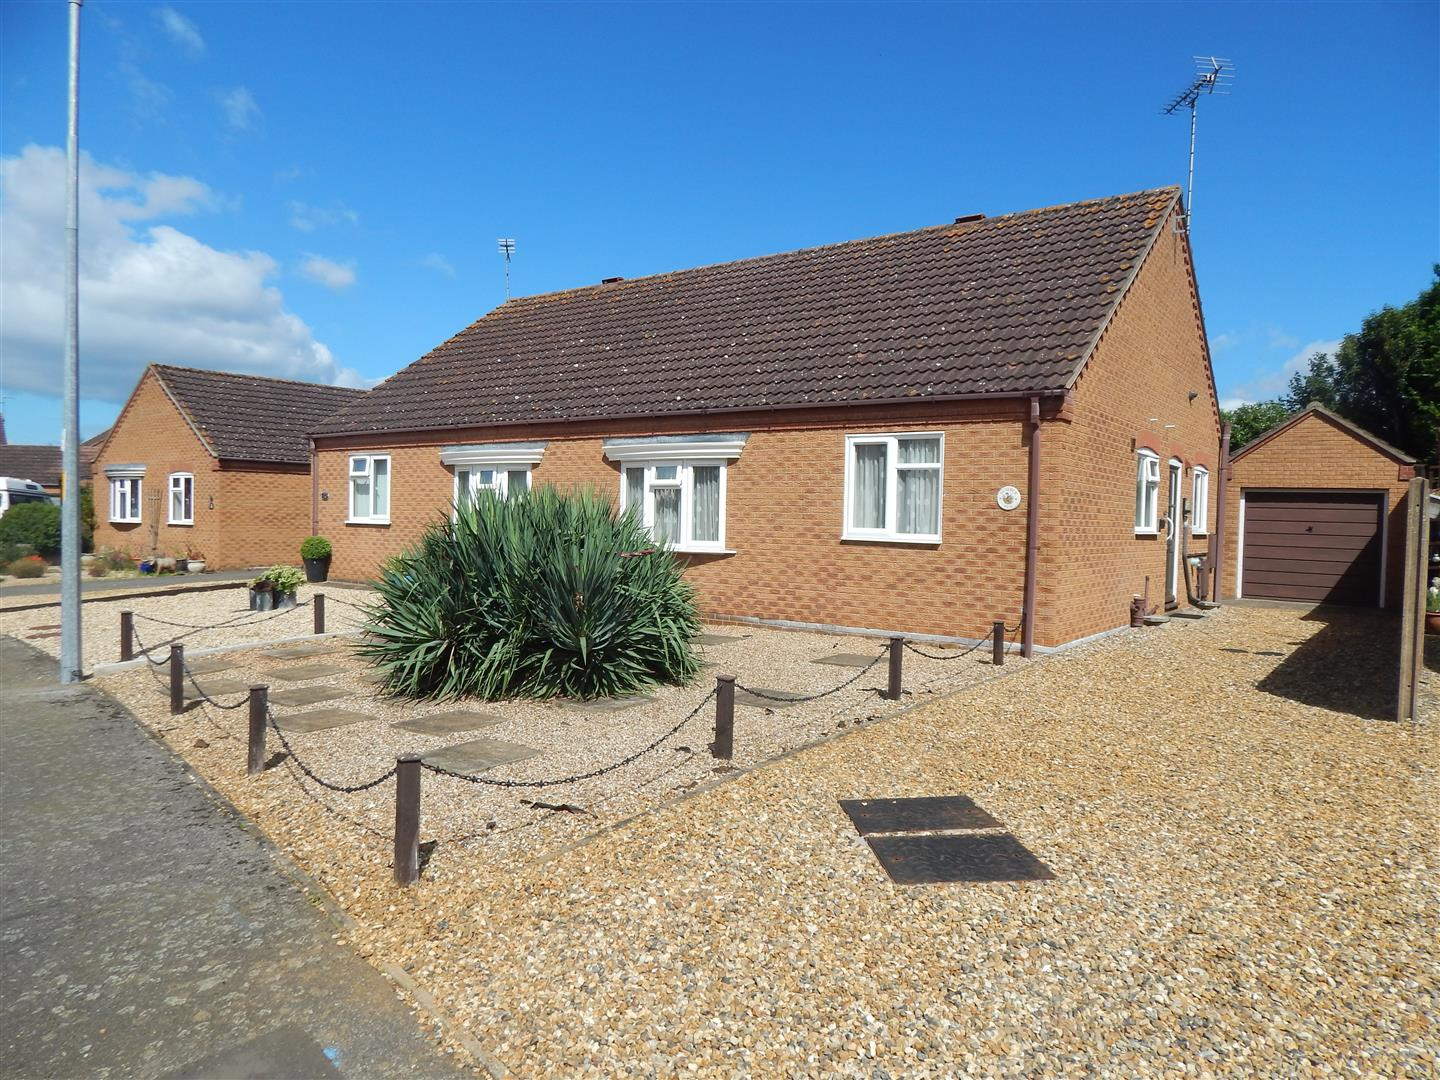 2 bed semi-detached bungalow for sale in Wiclewood Way, King's Lynn, PE31